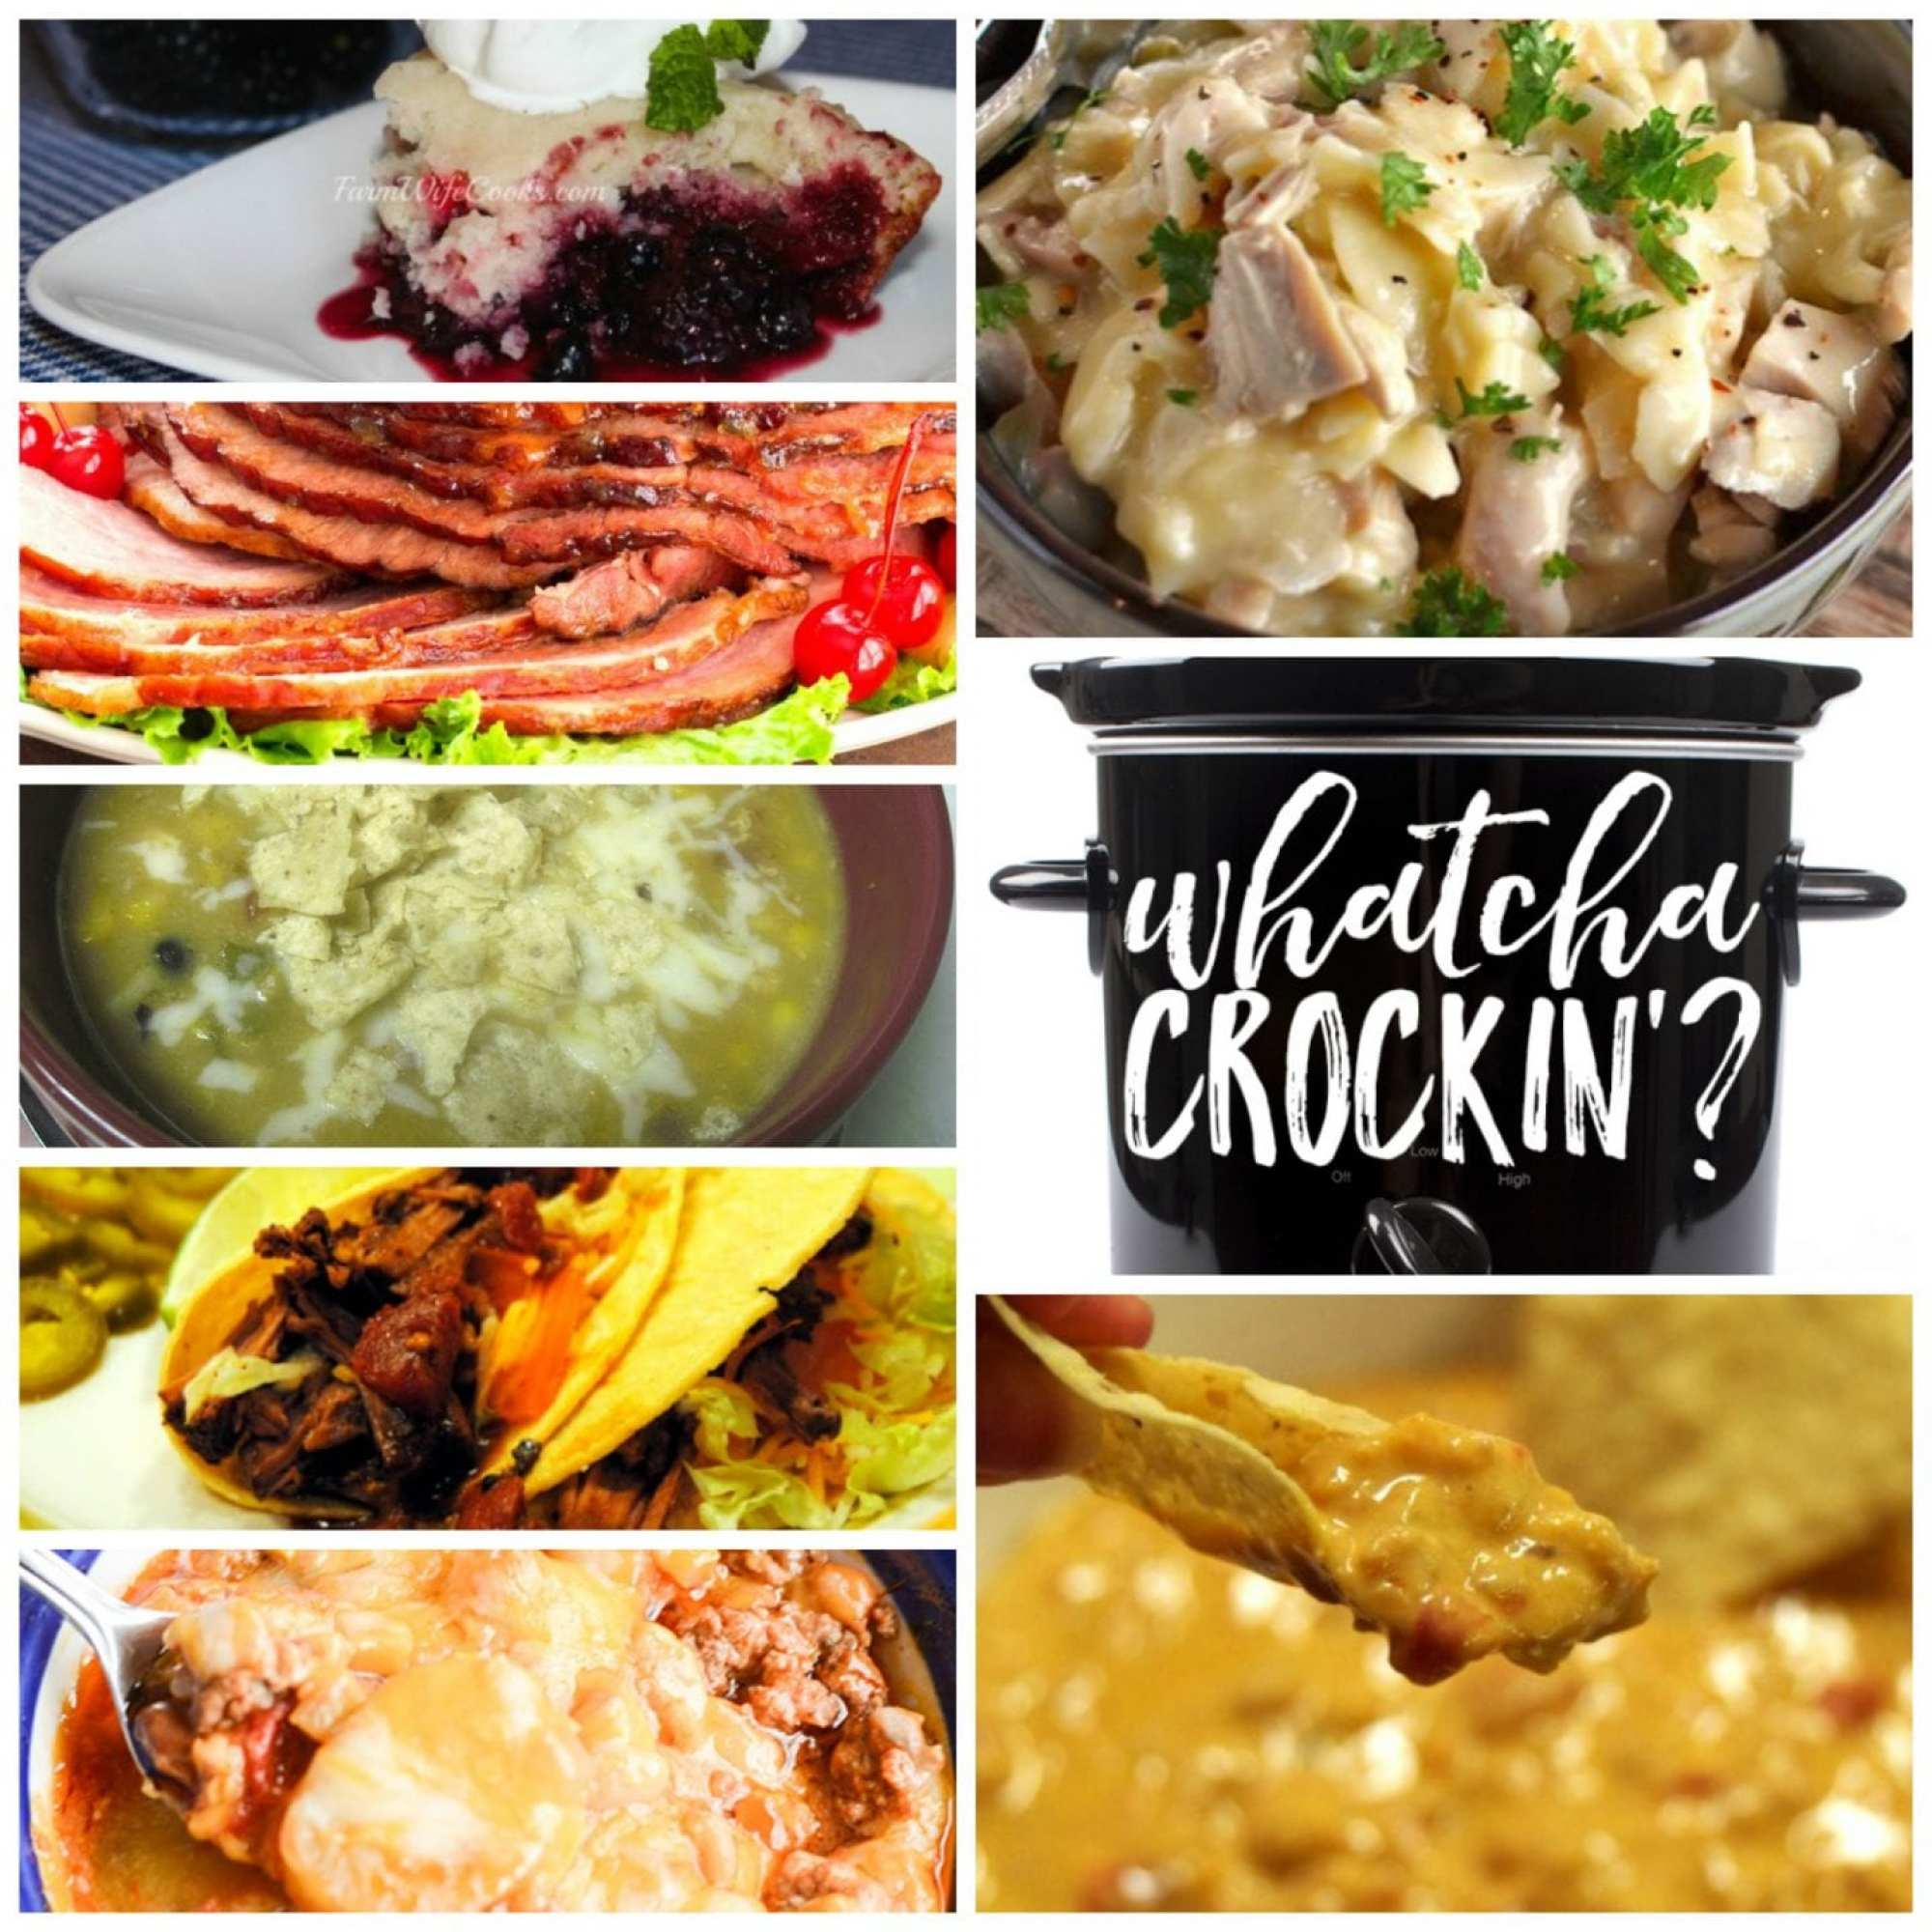 This week's Whatcha Crockin' crock pot recipes include Slow Cooker Chicken and Noodles, Slow Cooker Chicken Enchilada Soup, Crock Pot Cowboy Casserole, Mixed Berry Dump Cake, Slow Cooked Pineapple Brown Sugar Glazed Ham, Texas Queso Dip, Slow Cooker Mexican Pot Roast Tacosand much more!